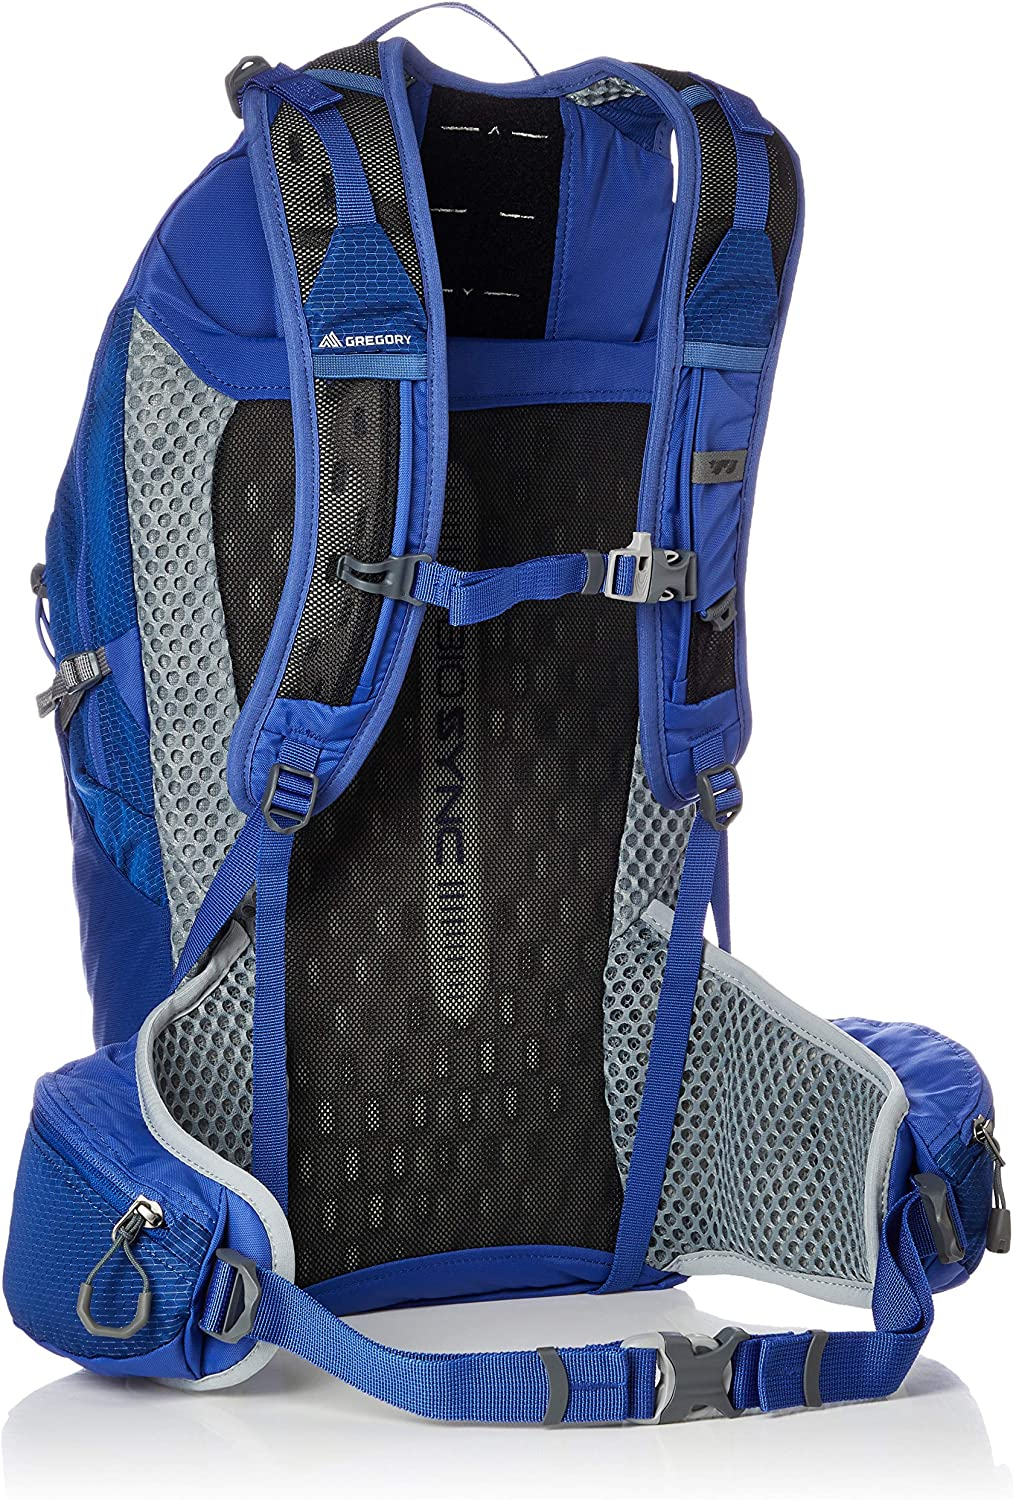 Gregory Mountain Products Womens Maya 22 Hiking Backpack,RIVIERA BLUE